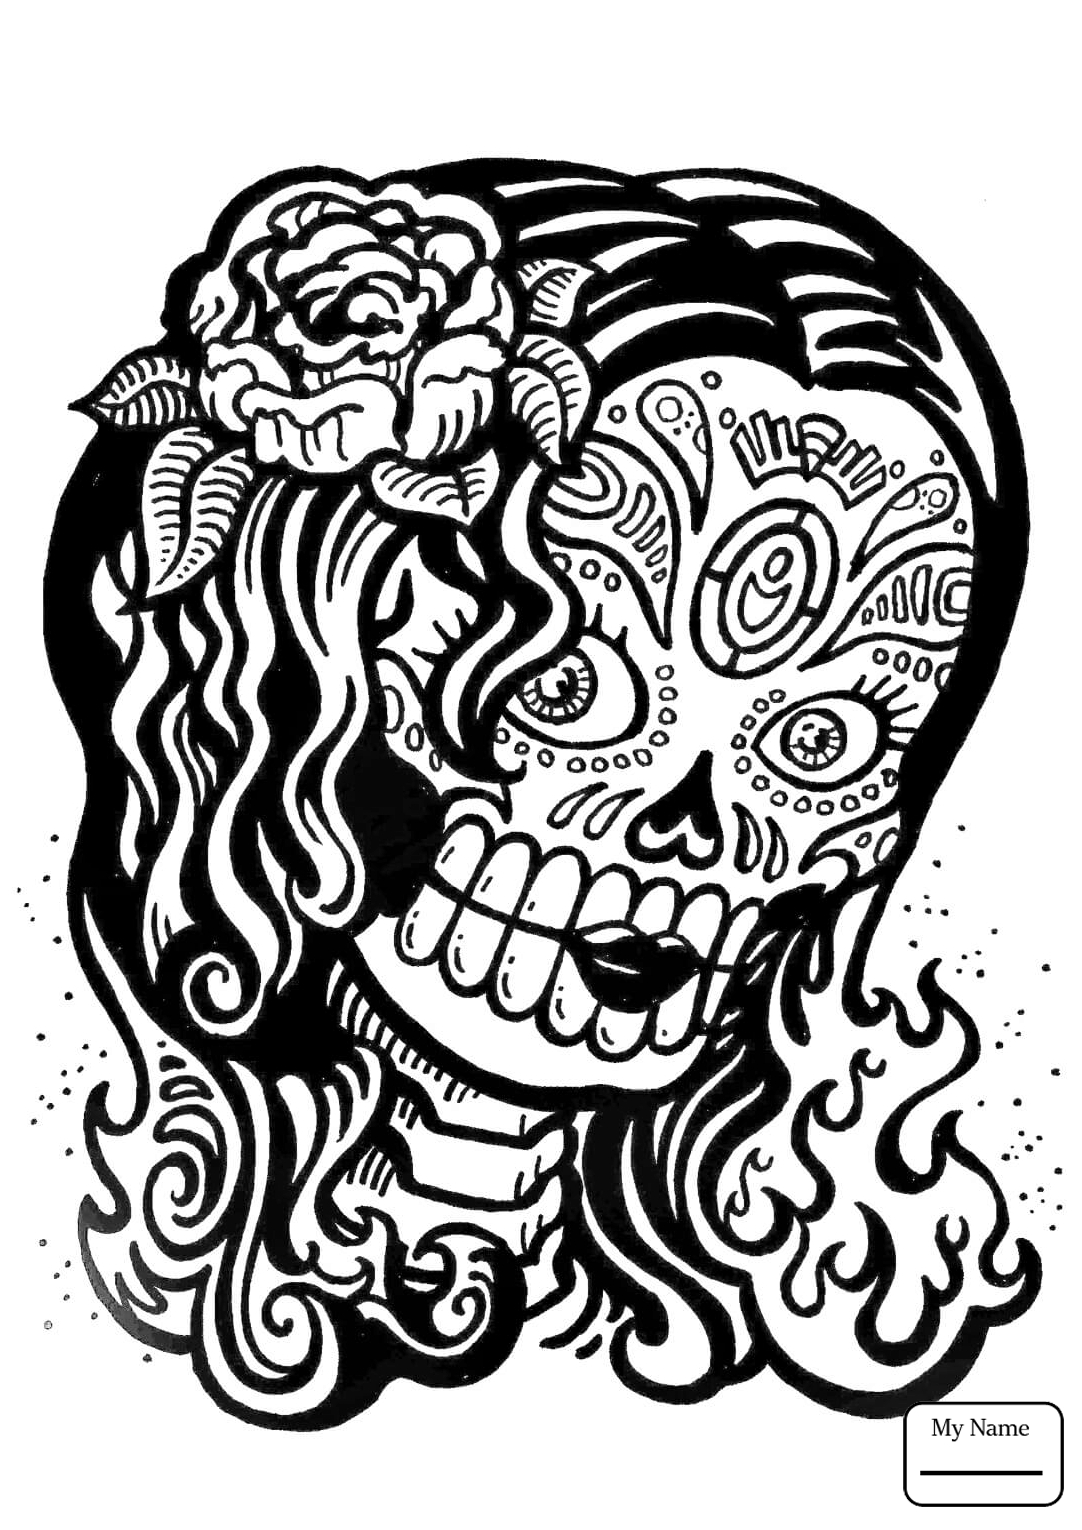 1082x1530 Day Of The Dead Girl Skull Sugar Skulls Arts Culture Sugar Skulls